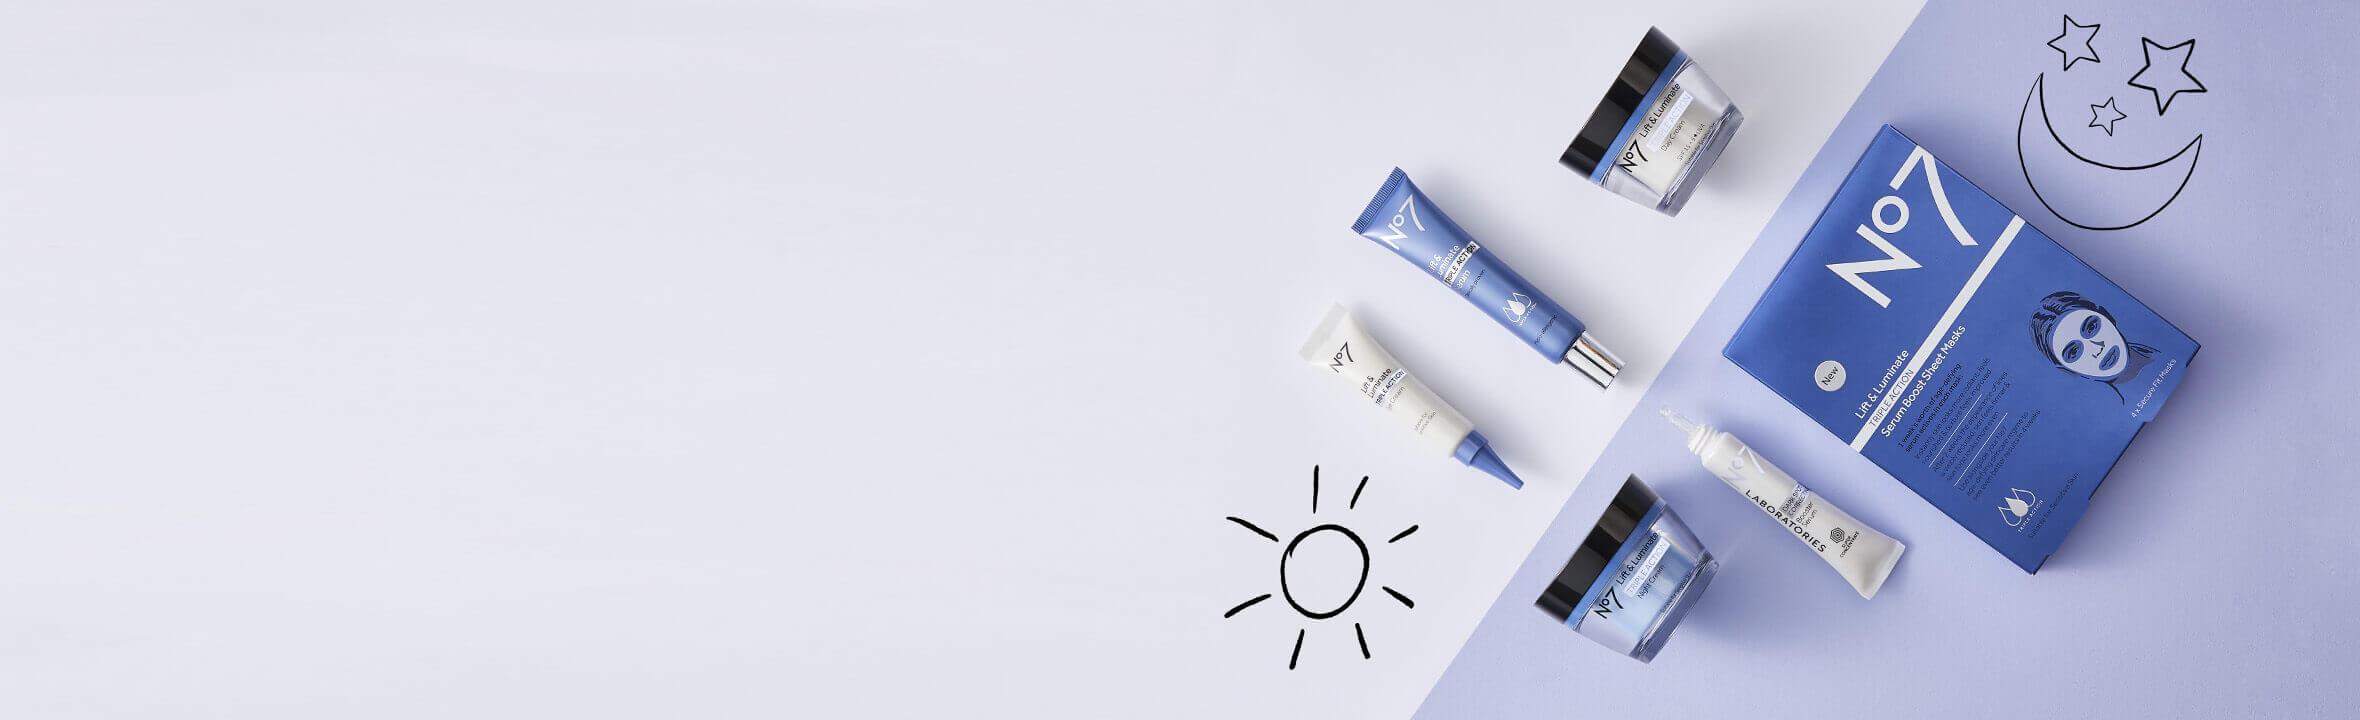 Day and night, take a moment to treat your skin and see lasting results. Beautiful skin starts with a daily commitment to cleanse, moisturize and nurture skin